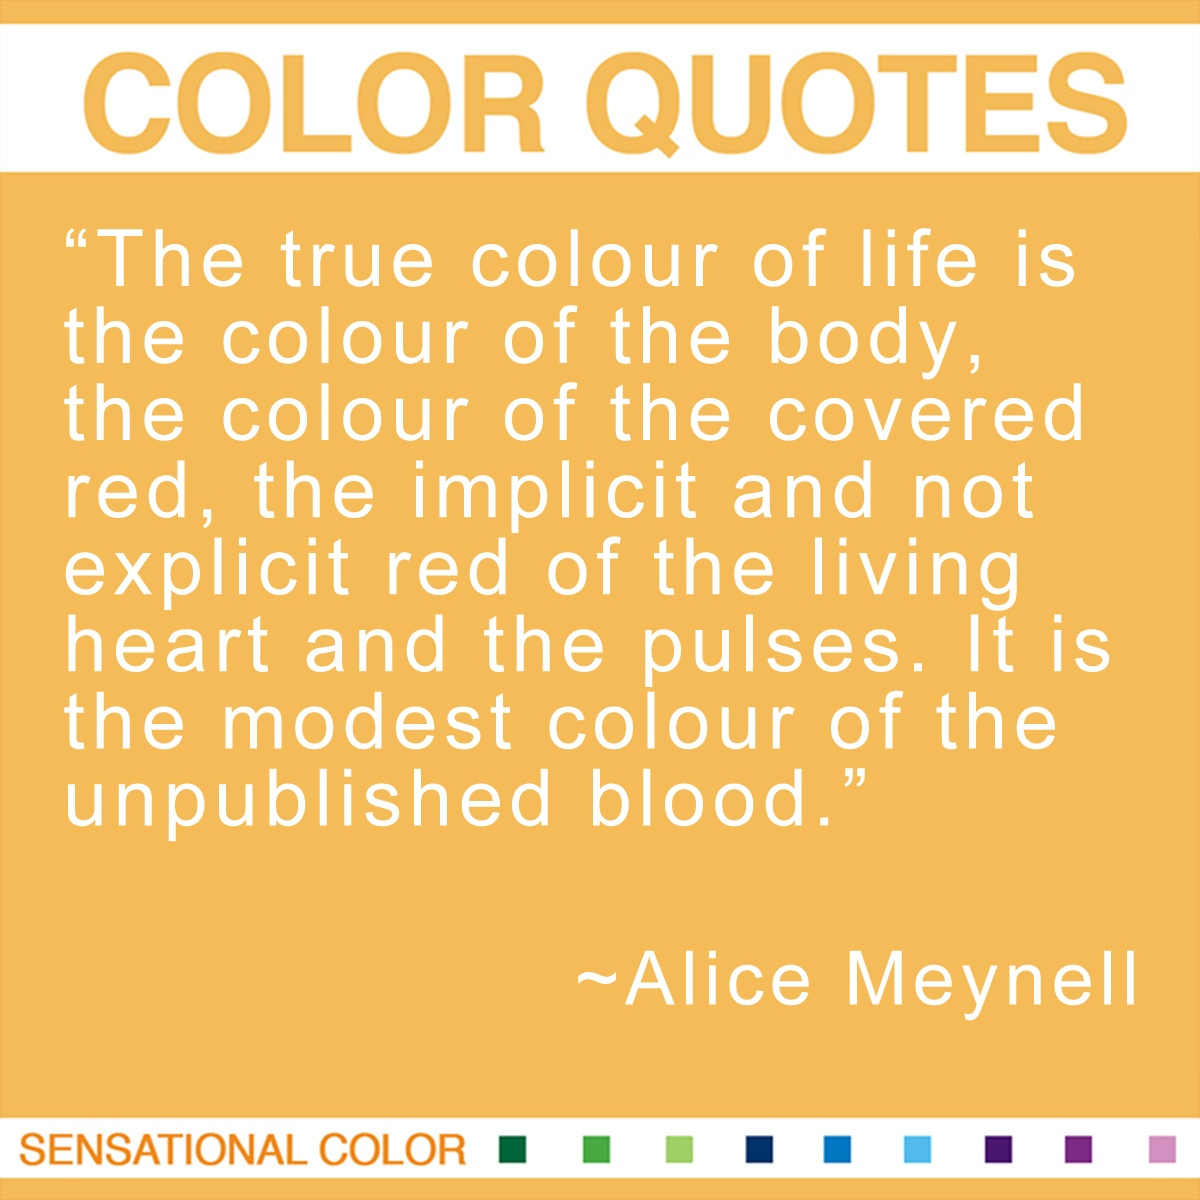 """The true colour of life is the colour of the body, the colour of the covered red, the implicit and not explicit red of the living heart and the pulses. It is the modest colour of the unpublished blood."" - Alice Meynell"